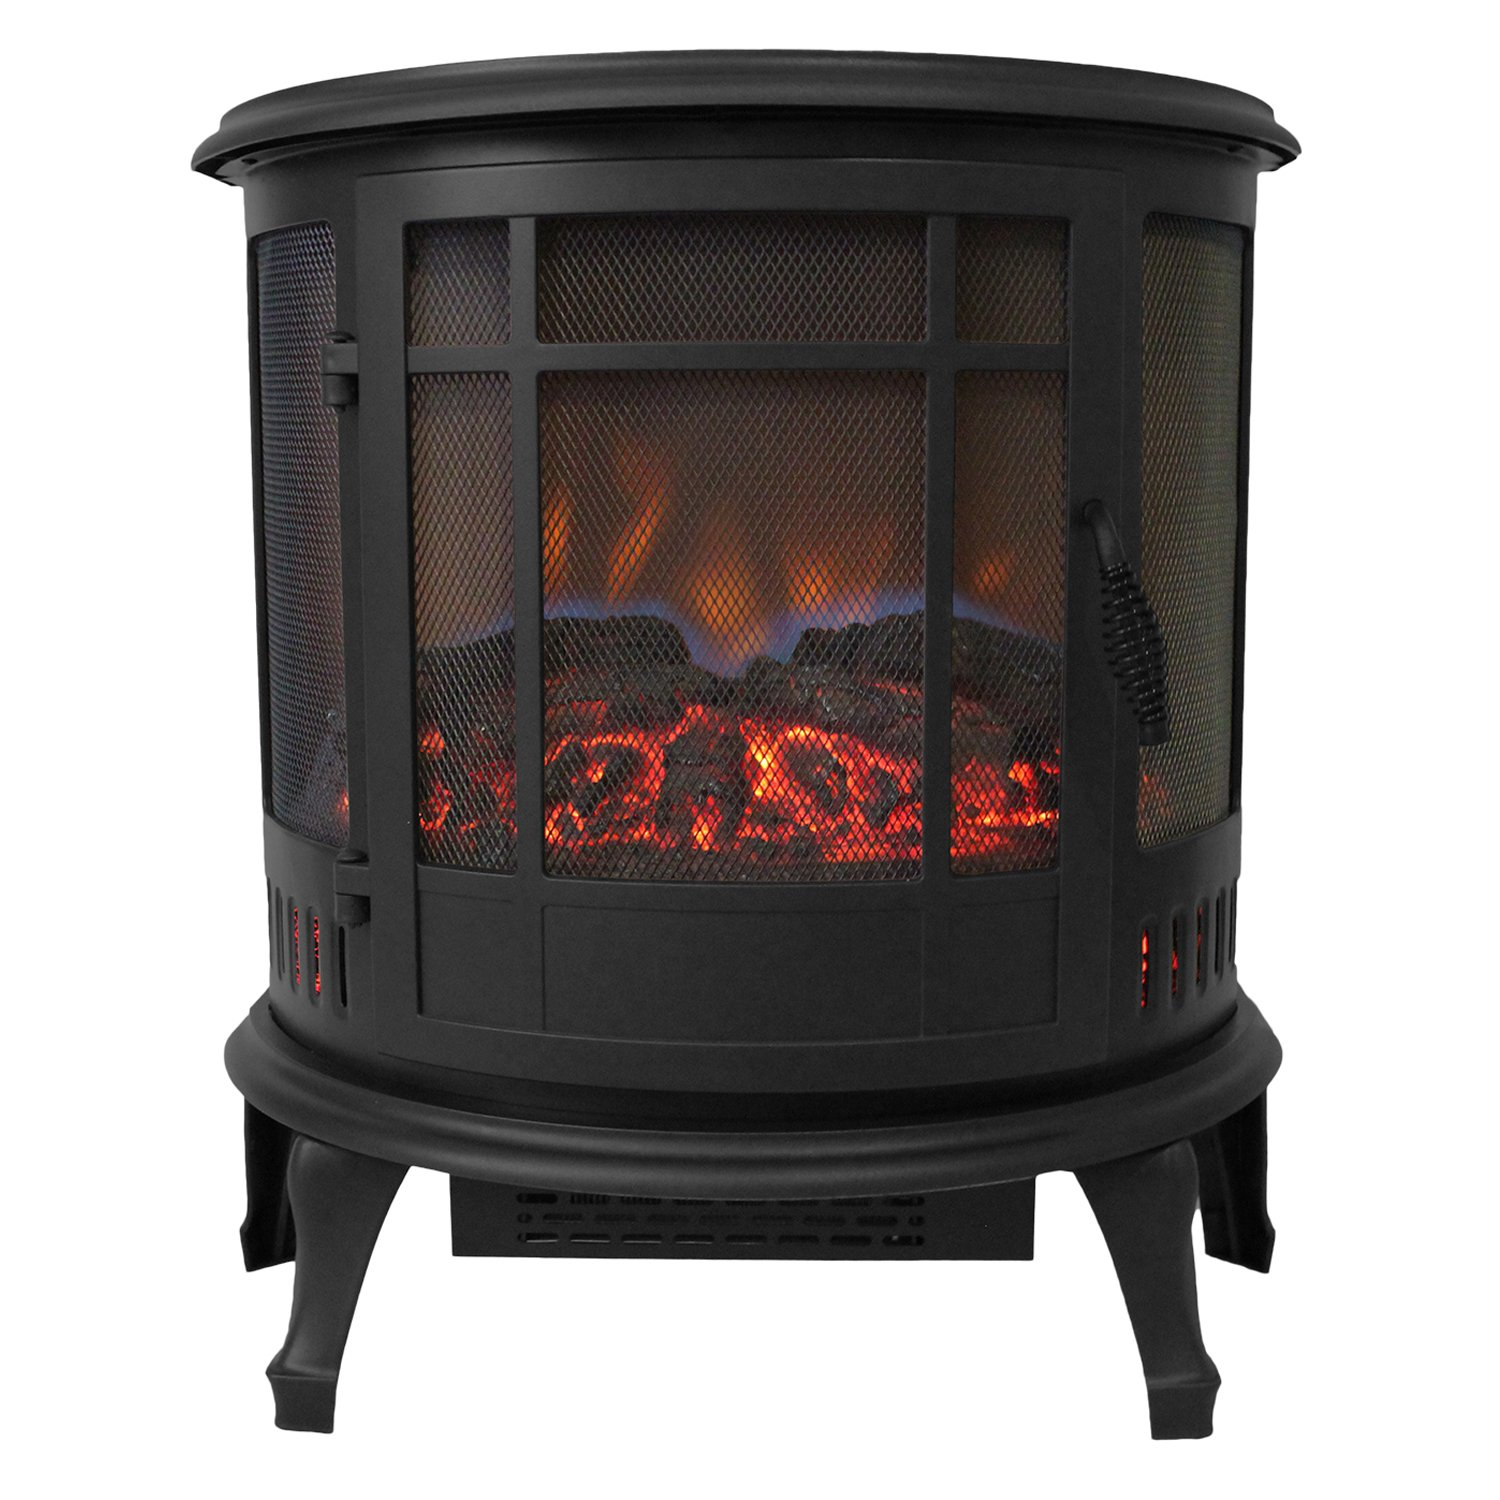 Comfort Glow The The Claremont Electric Stove by Comfort Glow